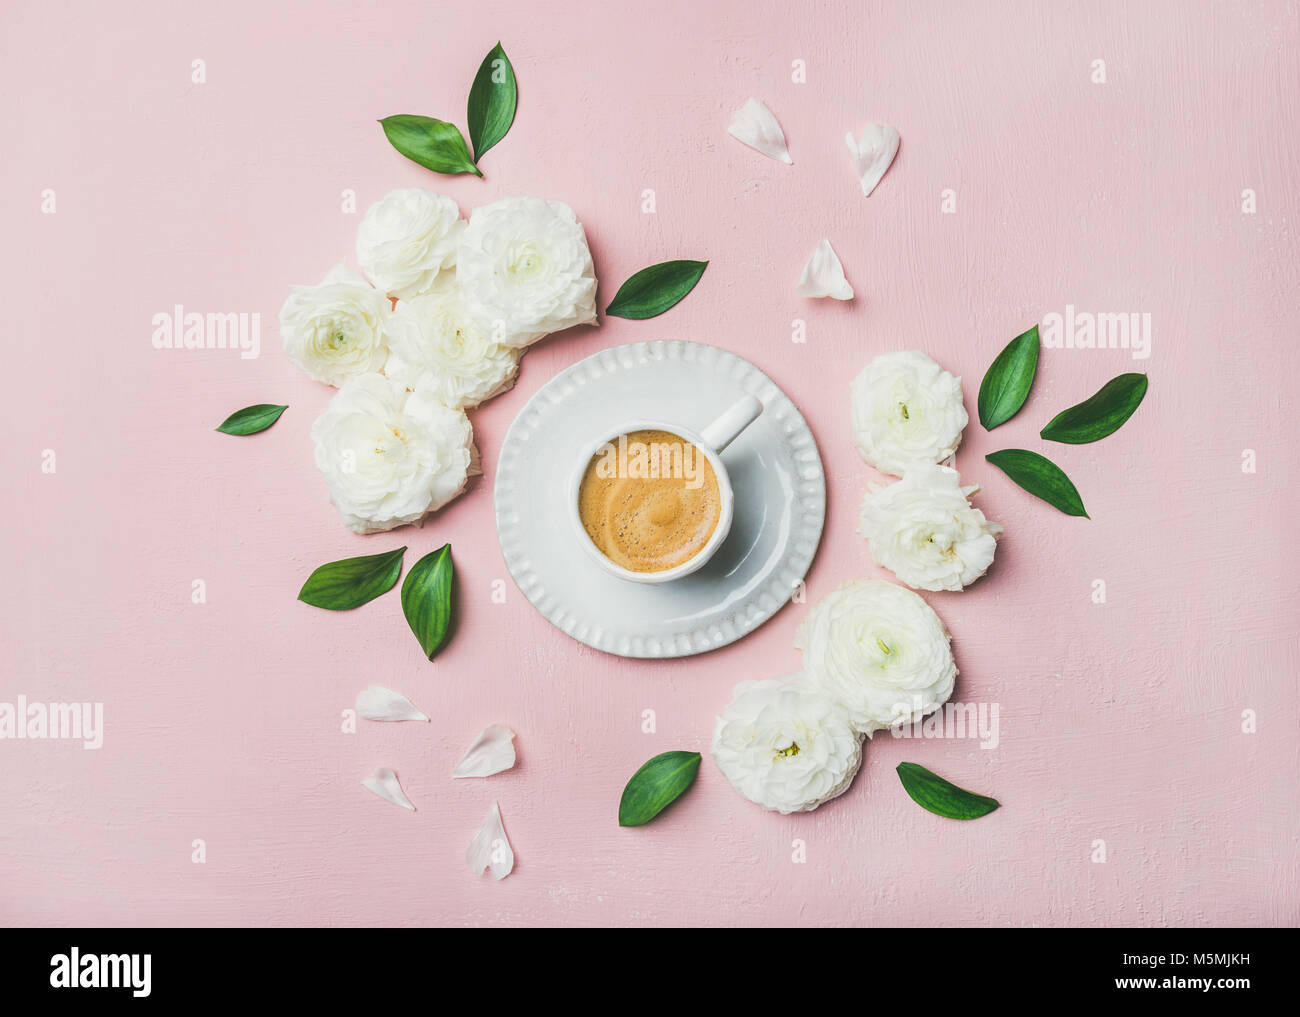 Cup of coffee surrounded with white ranunculus flowers - Stock Image